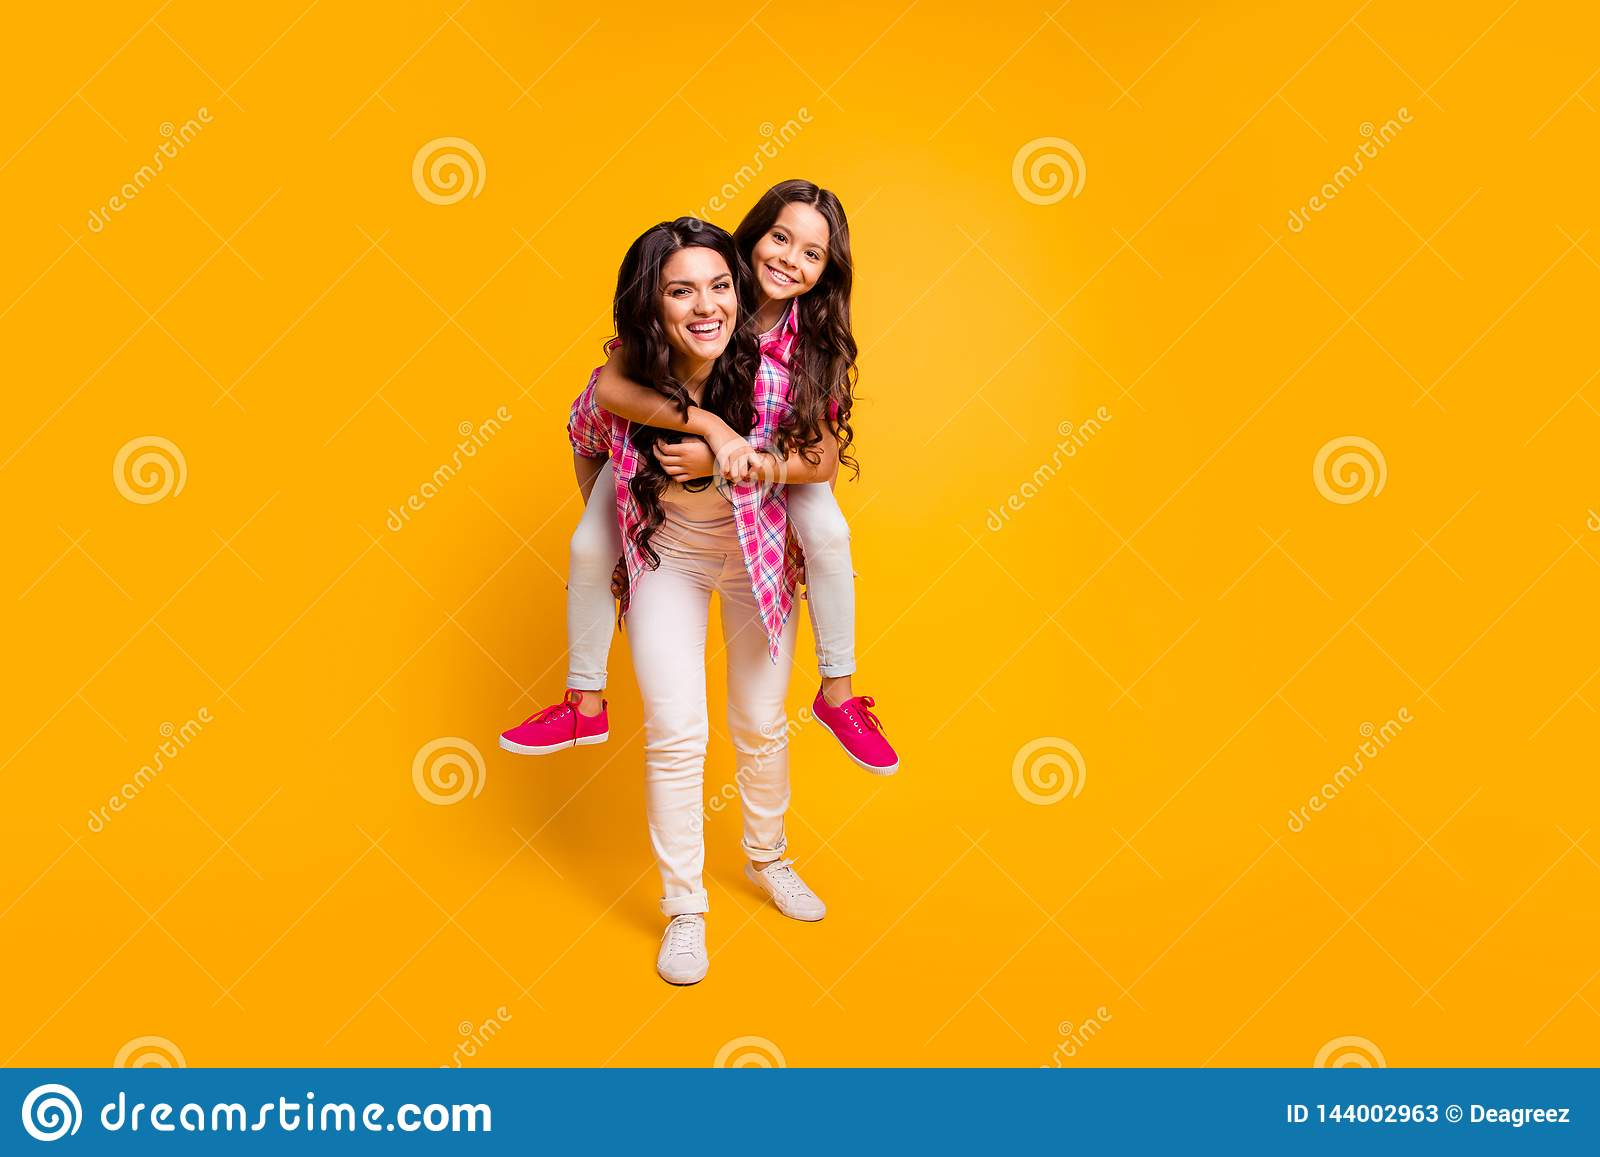 Full Length Body Size Photo Of Mom Kid Best Fellows Fellowship Have